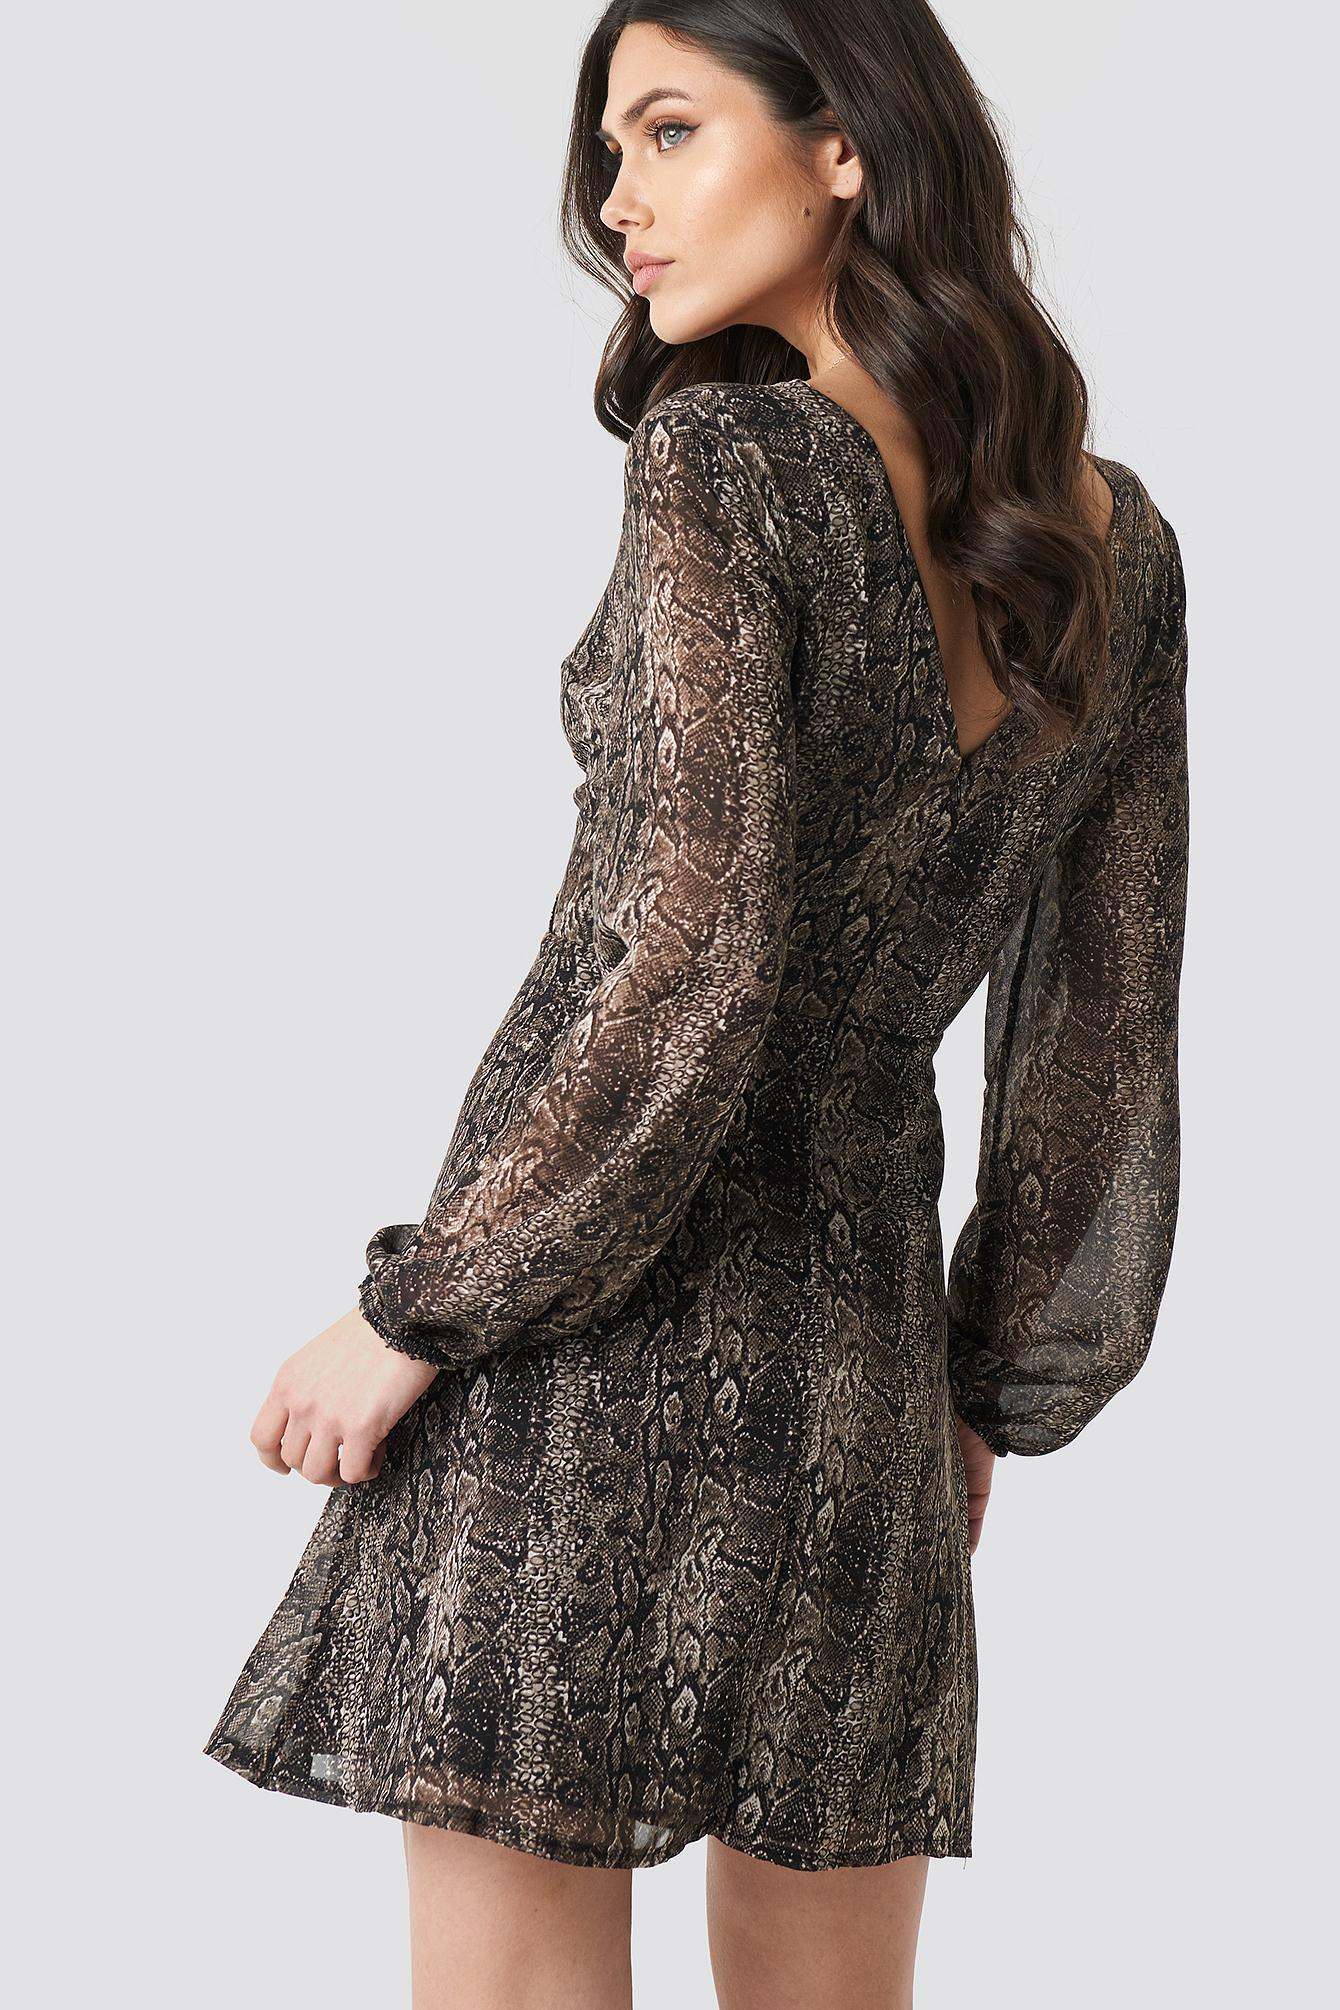 879205be61 Trendyol Double Breasted Snake Dress Brown in Brown - Lyst